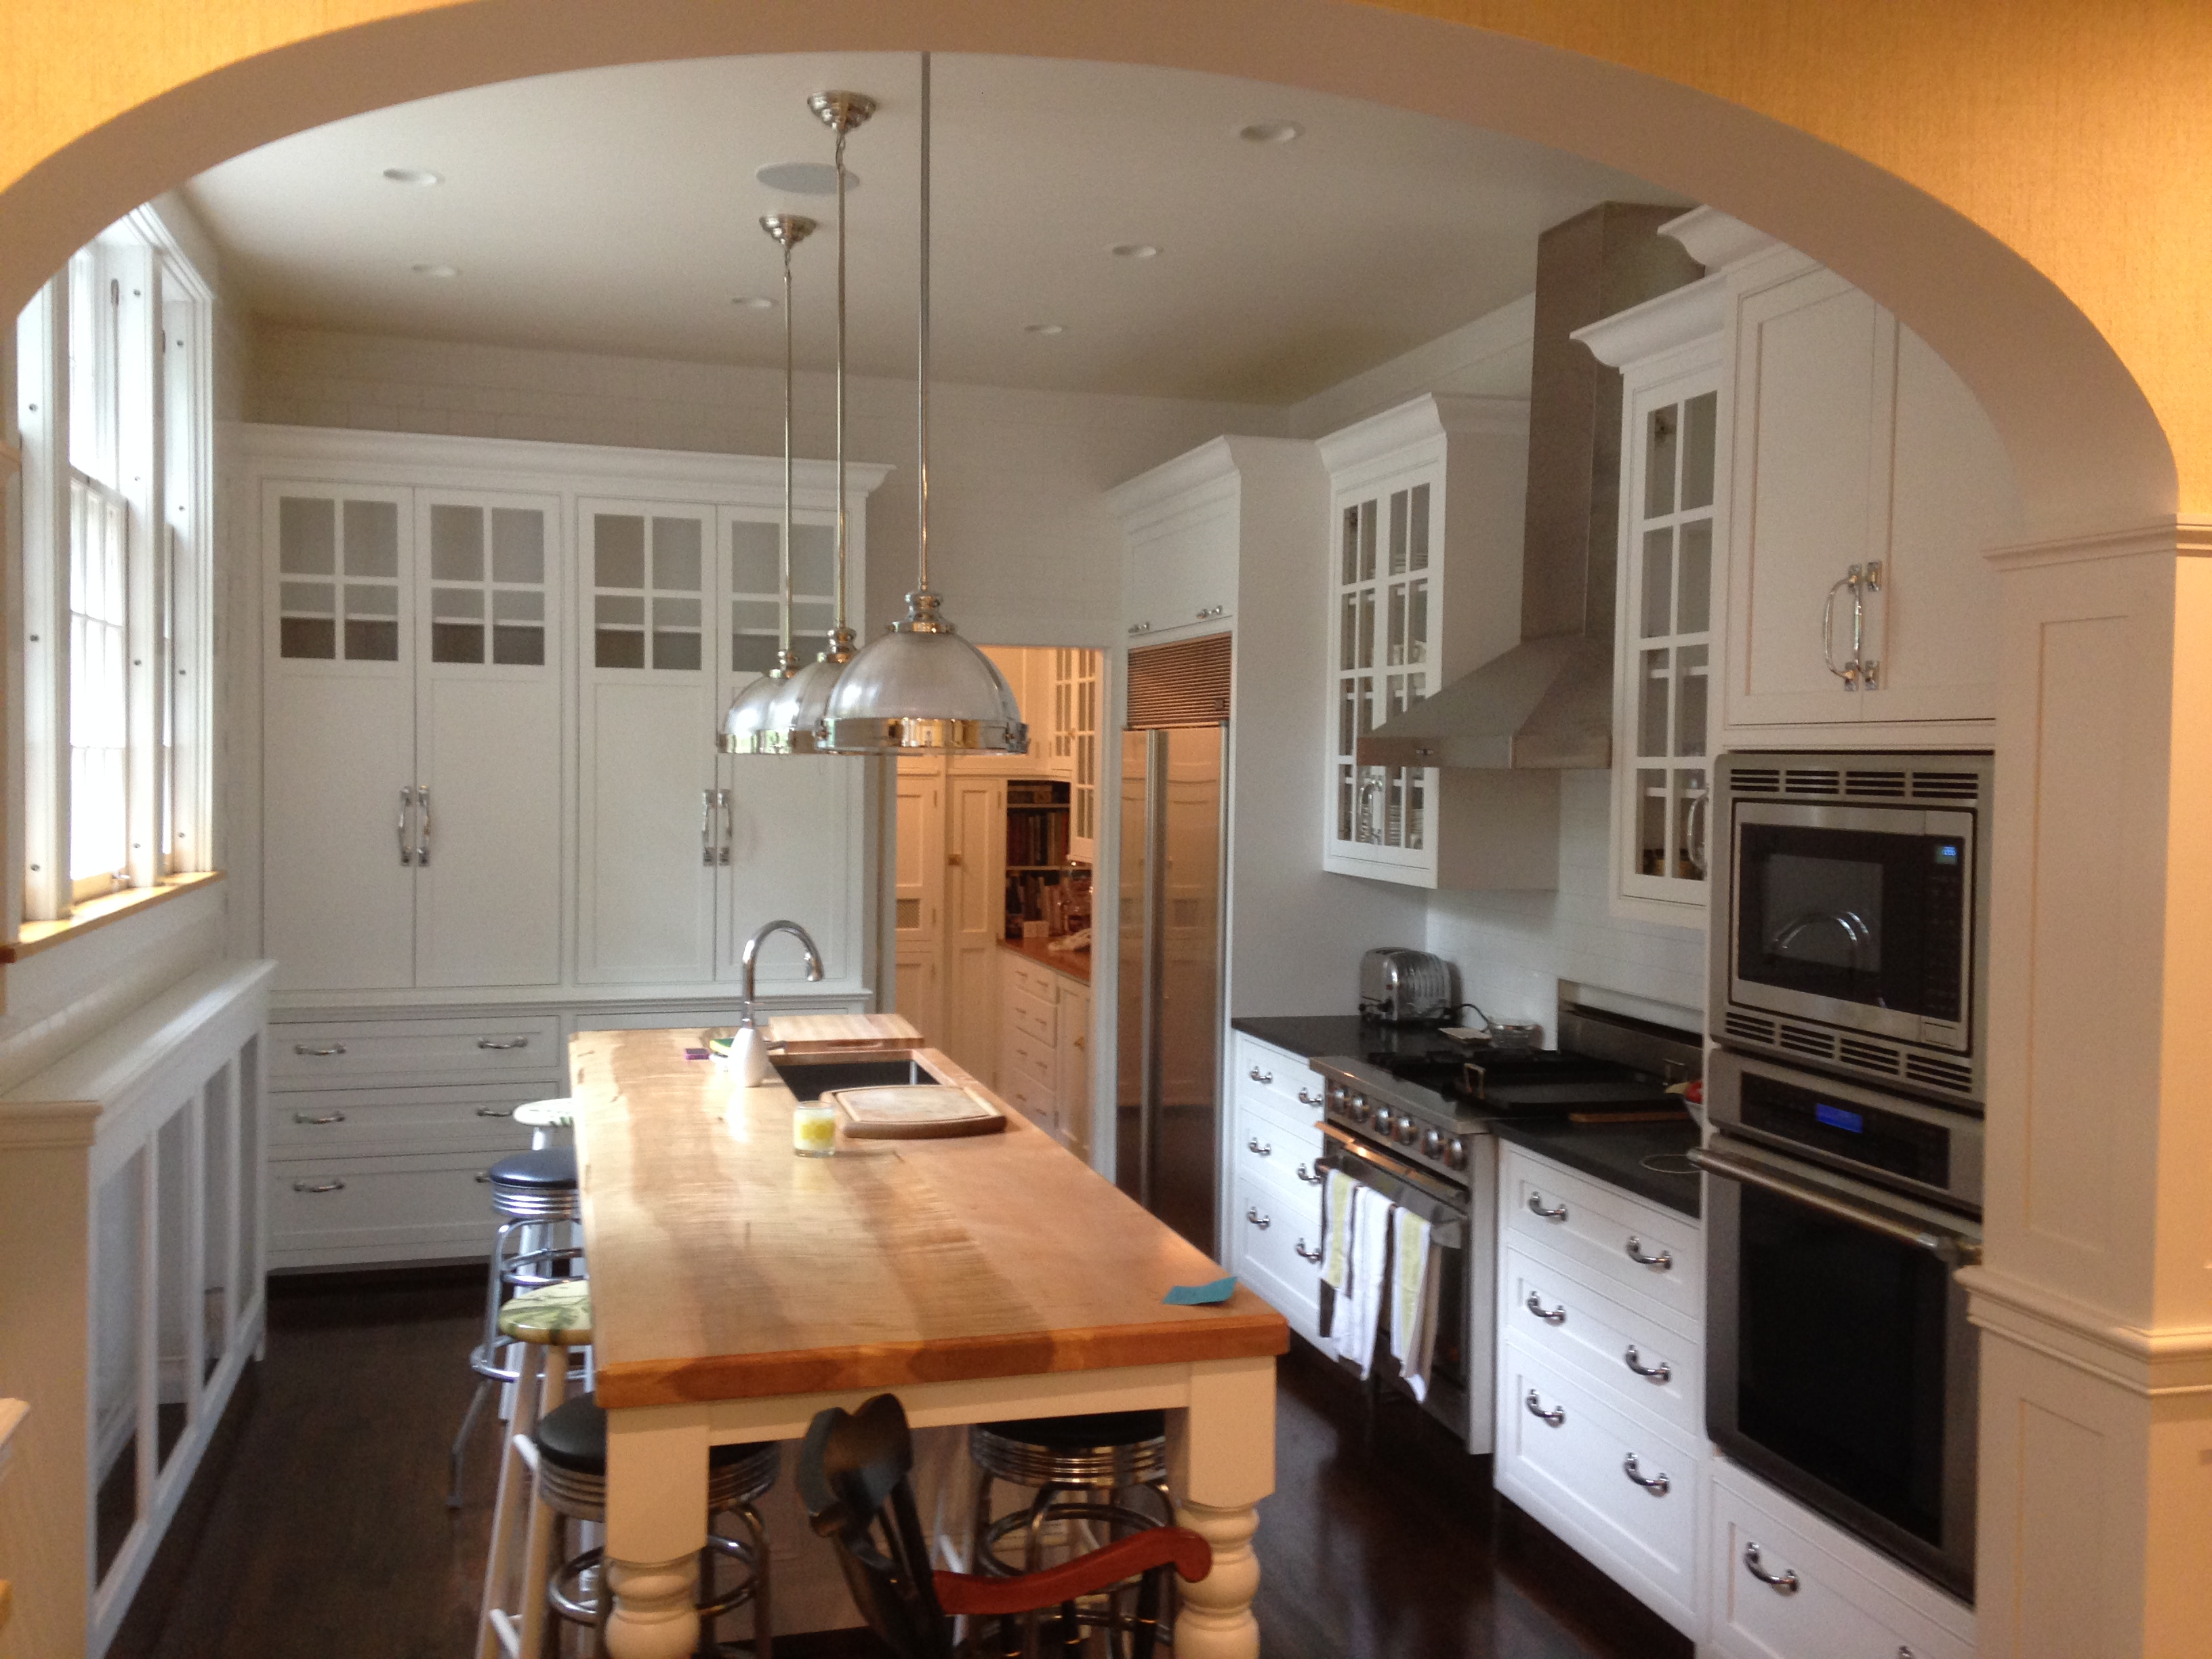 Jp electrical services company berea ohio proview for Kitchen remodeling company